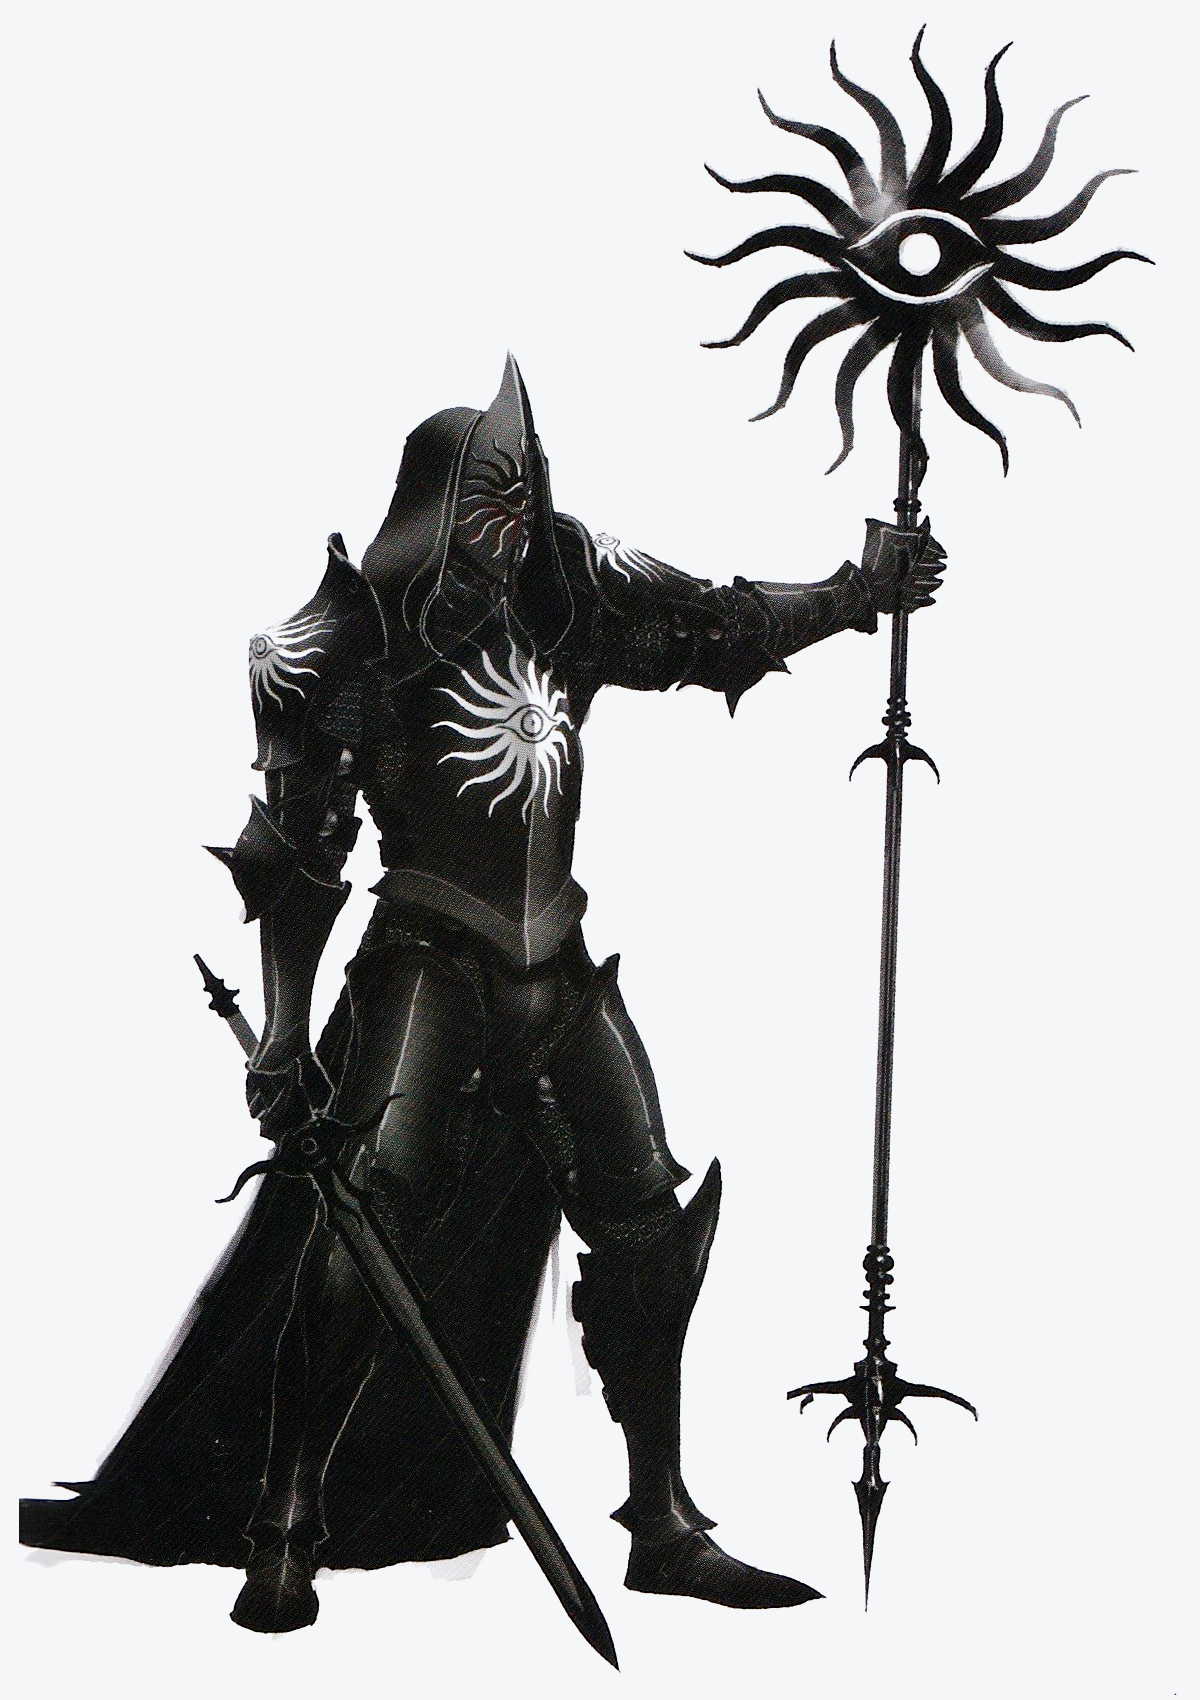 Dragon Age Inquisition Character Design Ideas : The inquisitor concept art in of dragon age